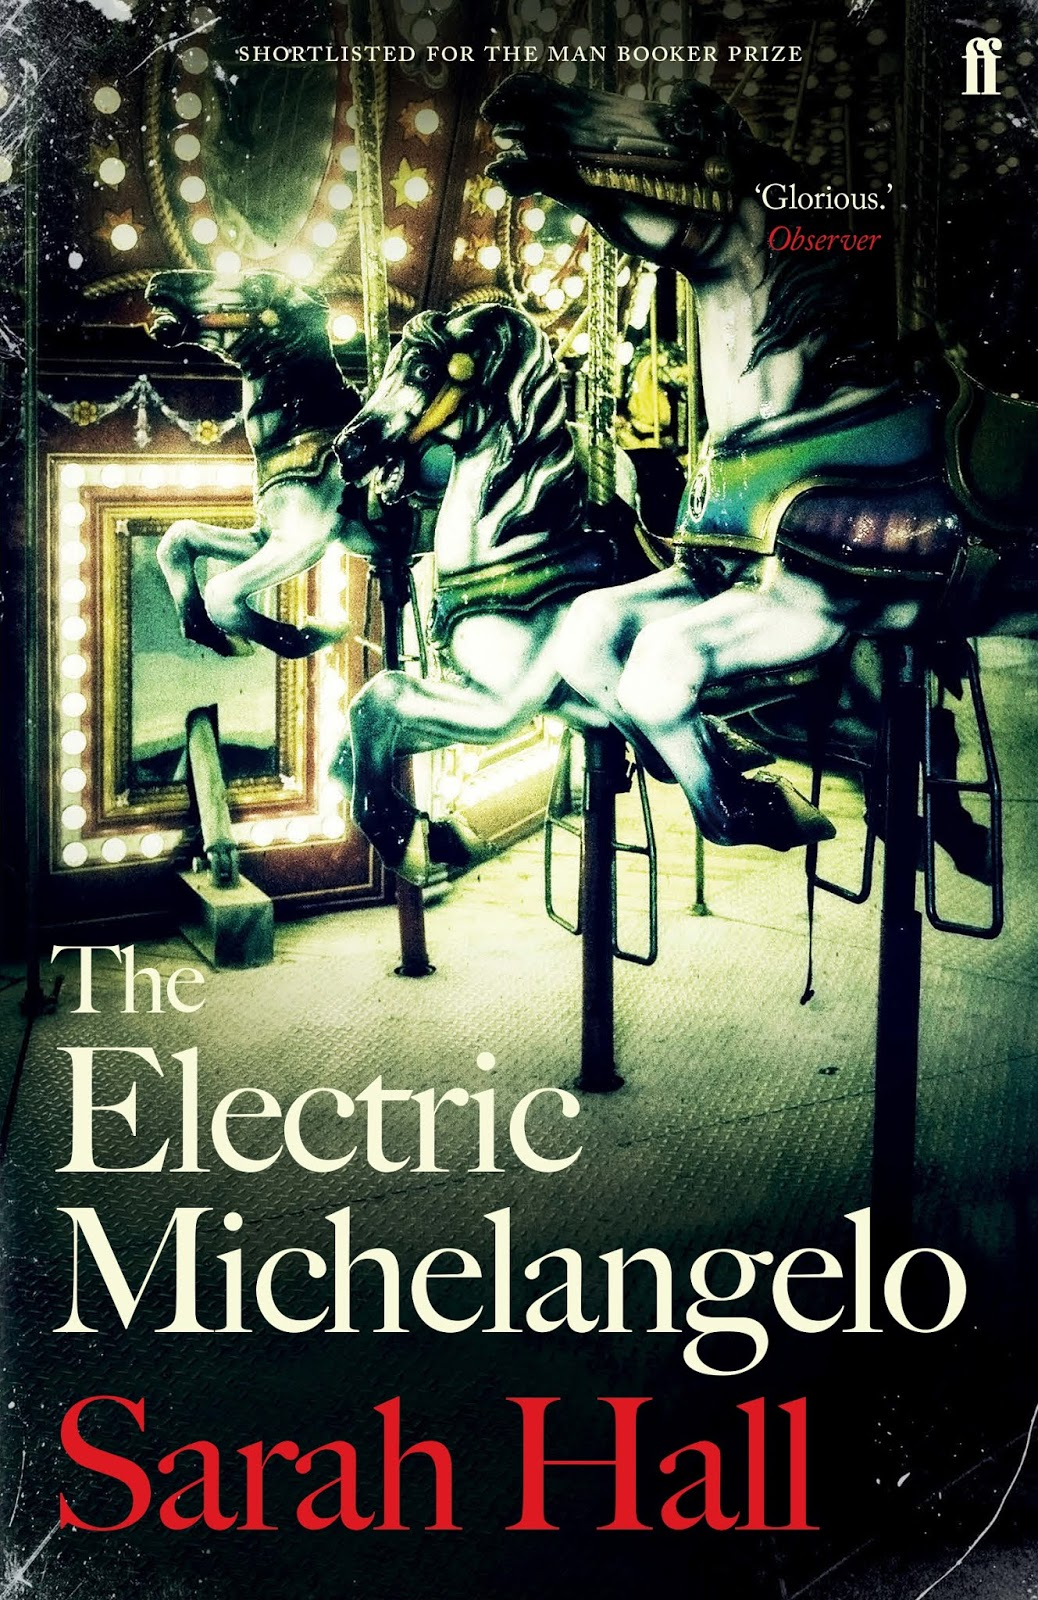 The Electric Michelangelo by Sarah Hall